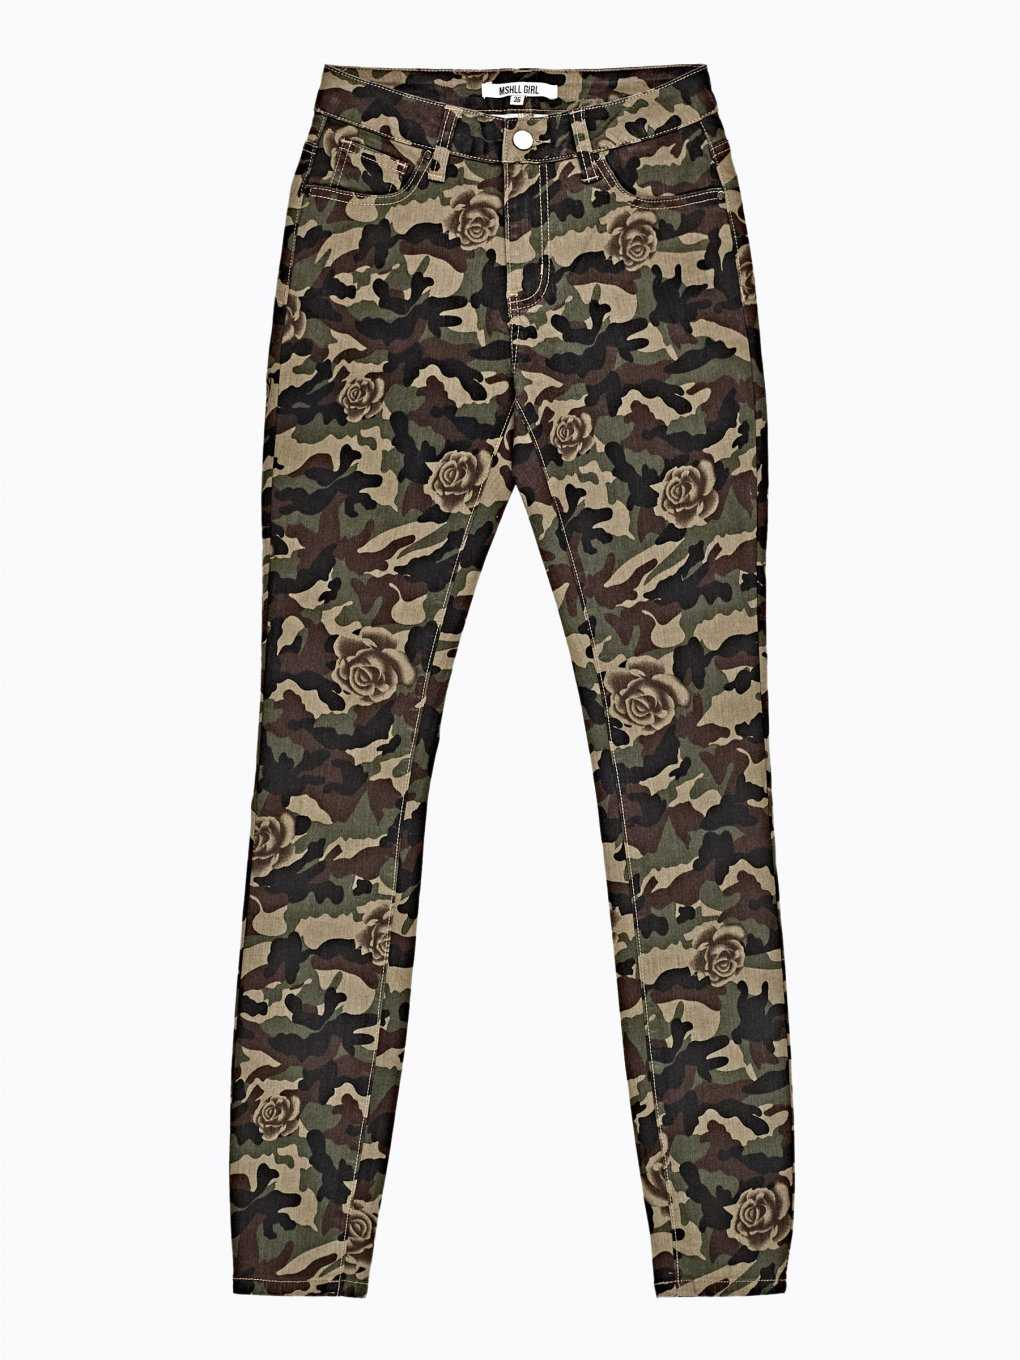 Camo & flower print skinny trousers